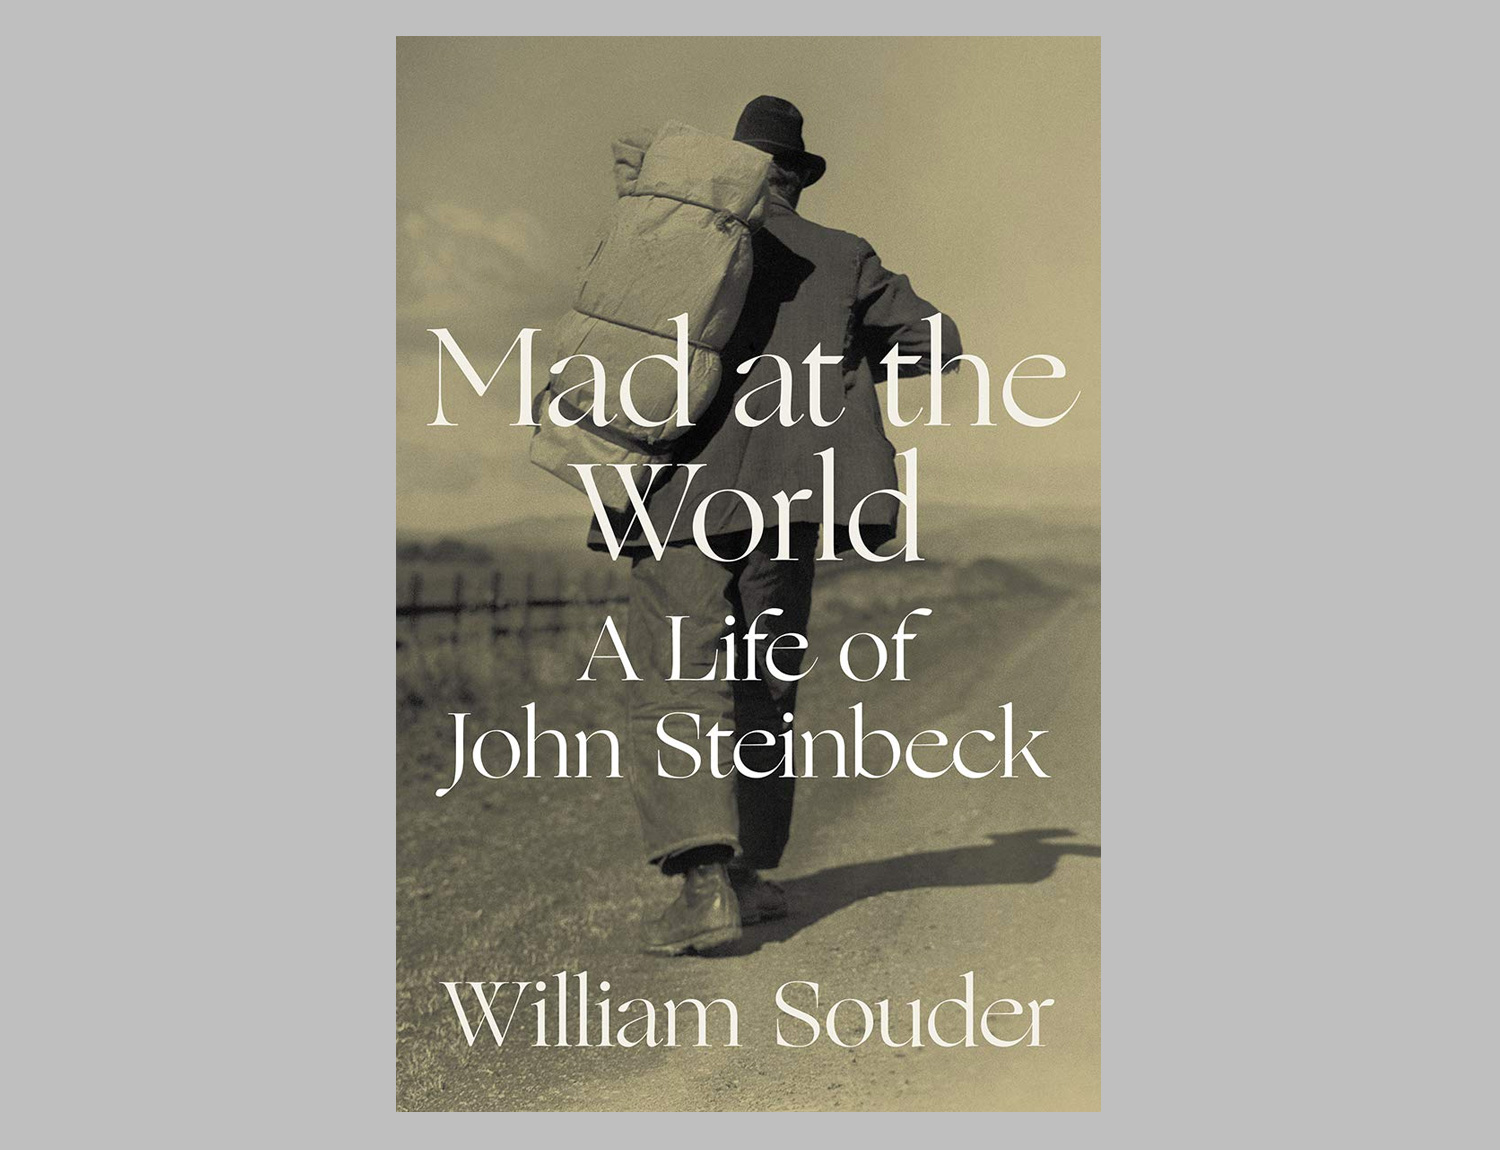 Mad at the World: A Life of John Steinbeck at werd.com